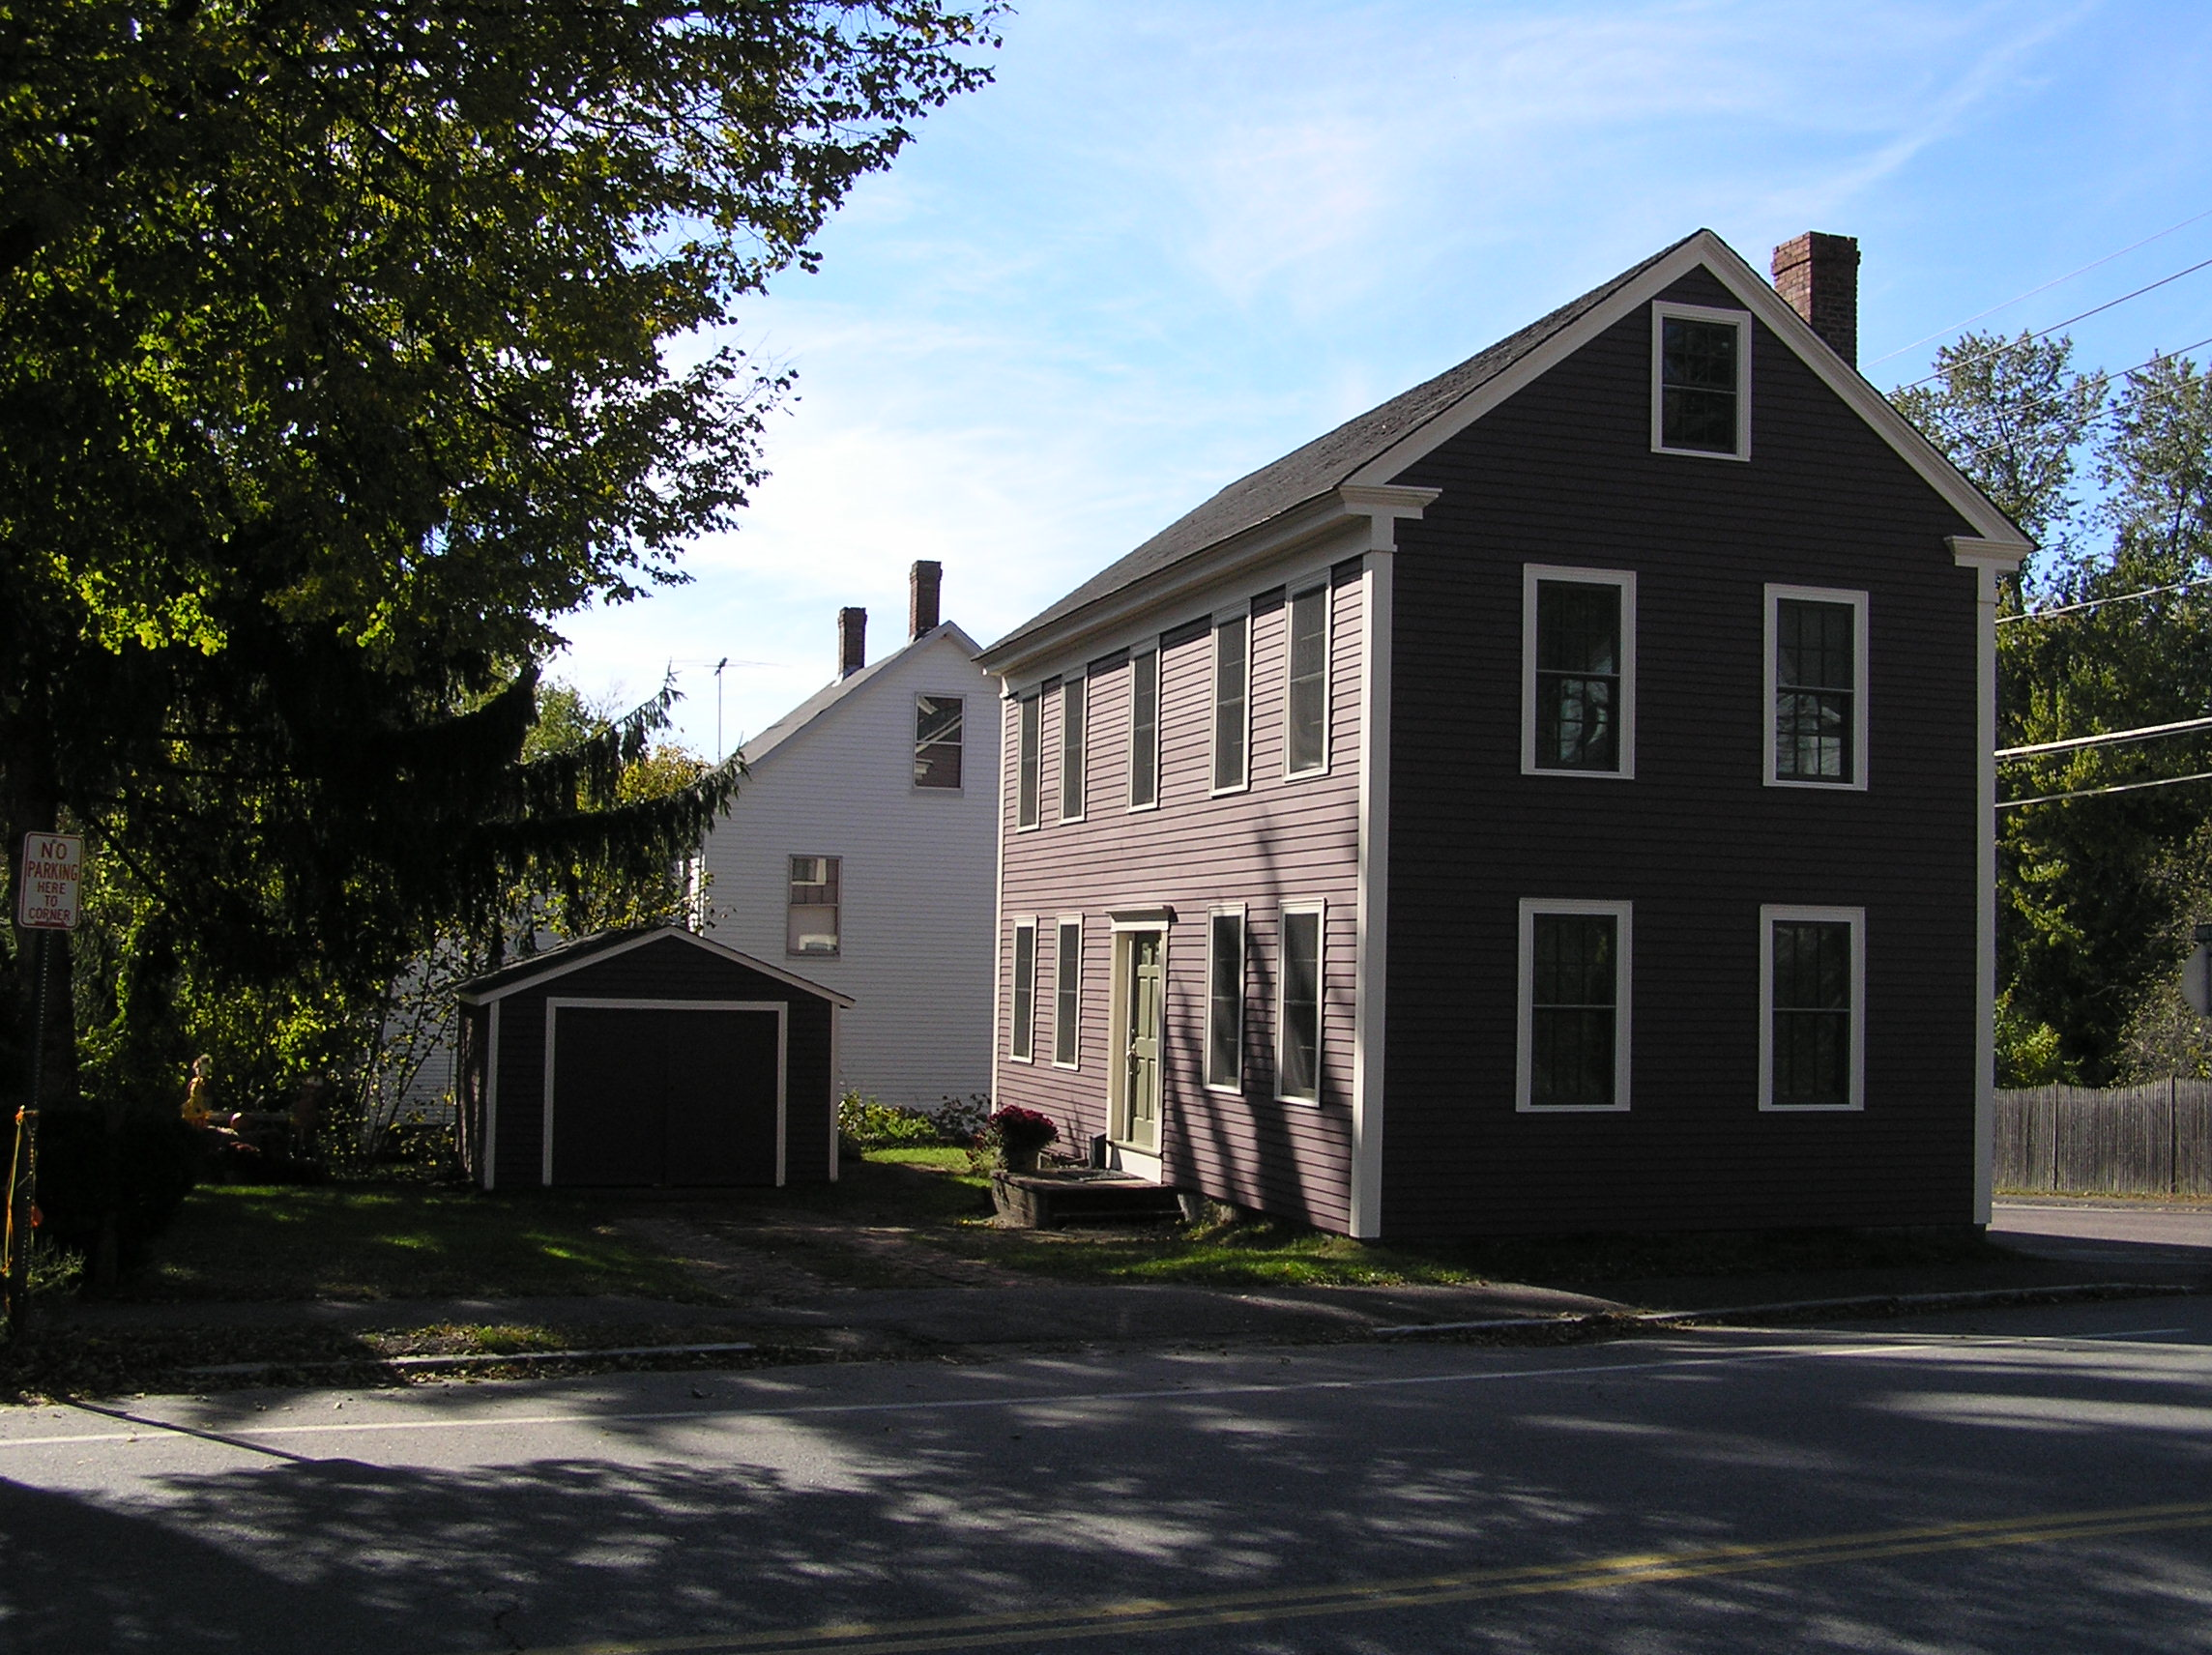 Baker house, 48 High St., Ipswich MA